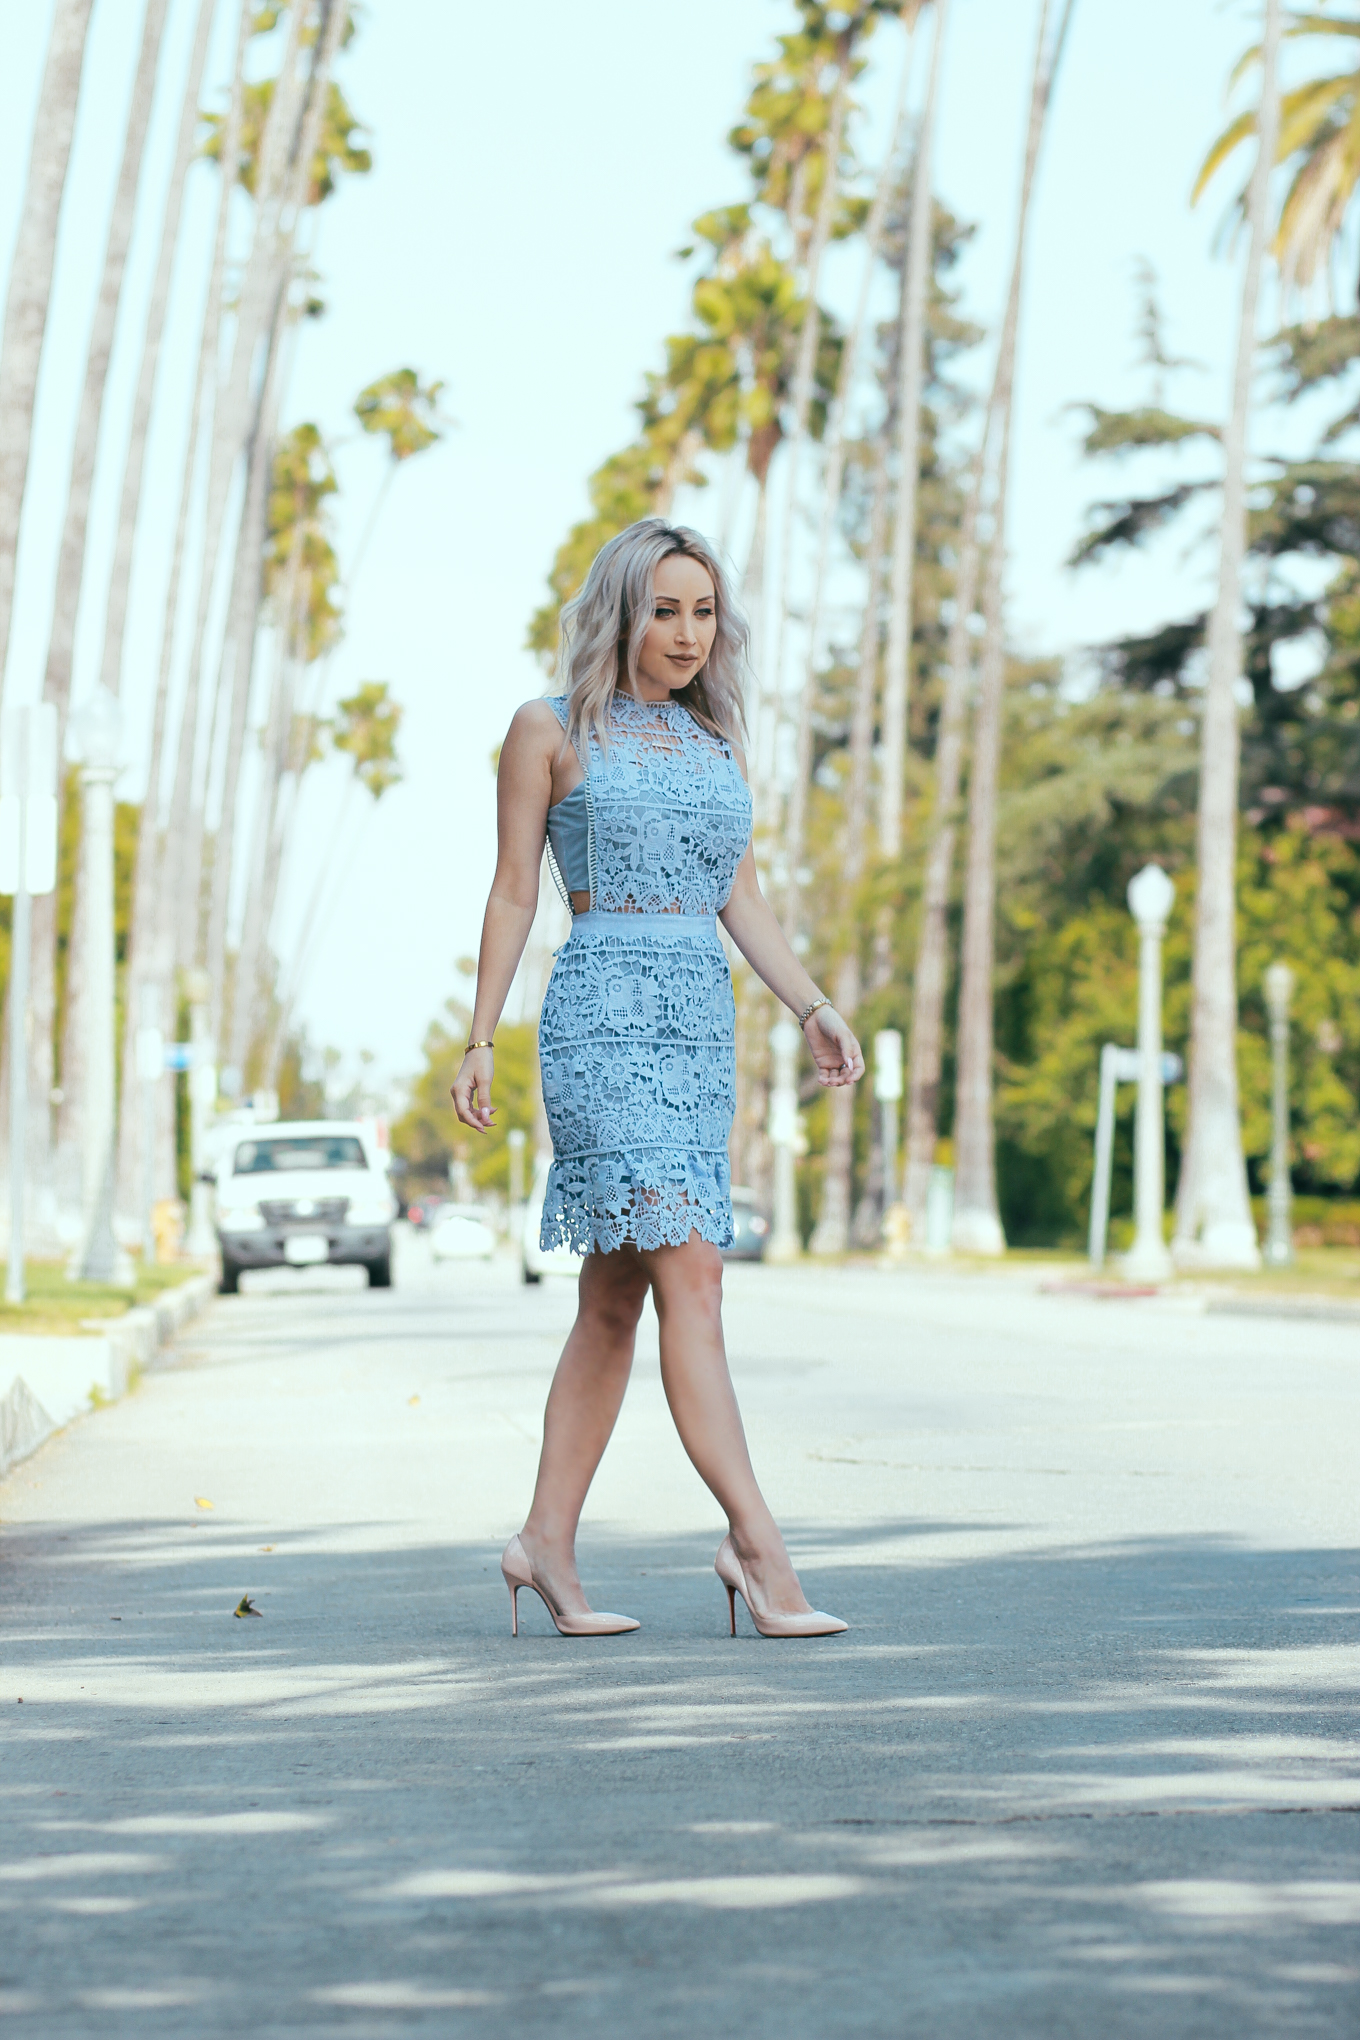 Blondie in the City | Baby Blue Lace A-Line Dress | Street of Palm Tress in LA